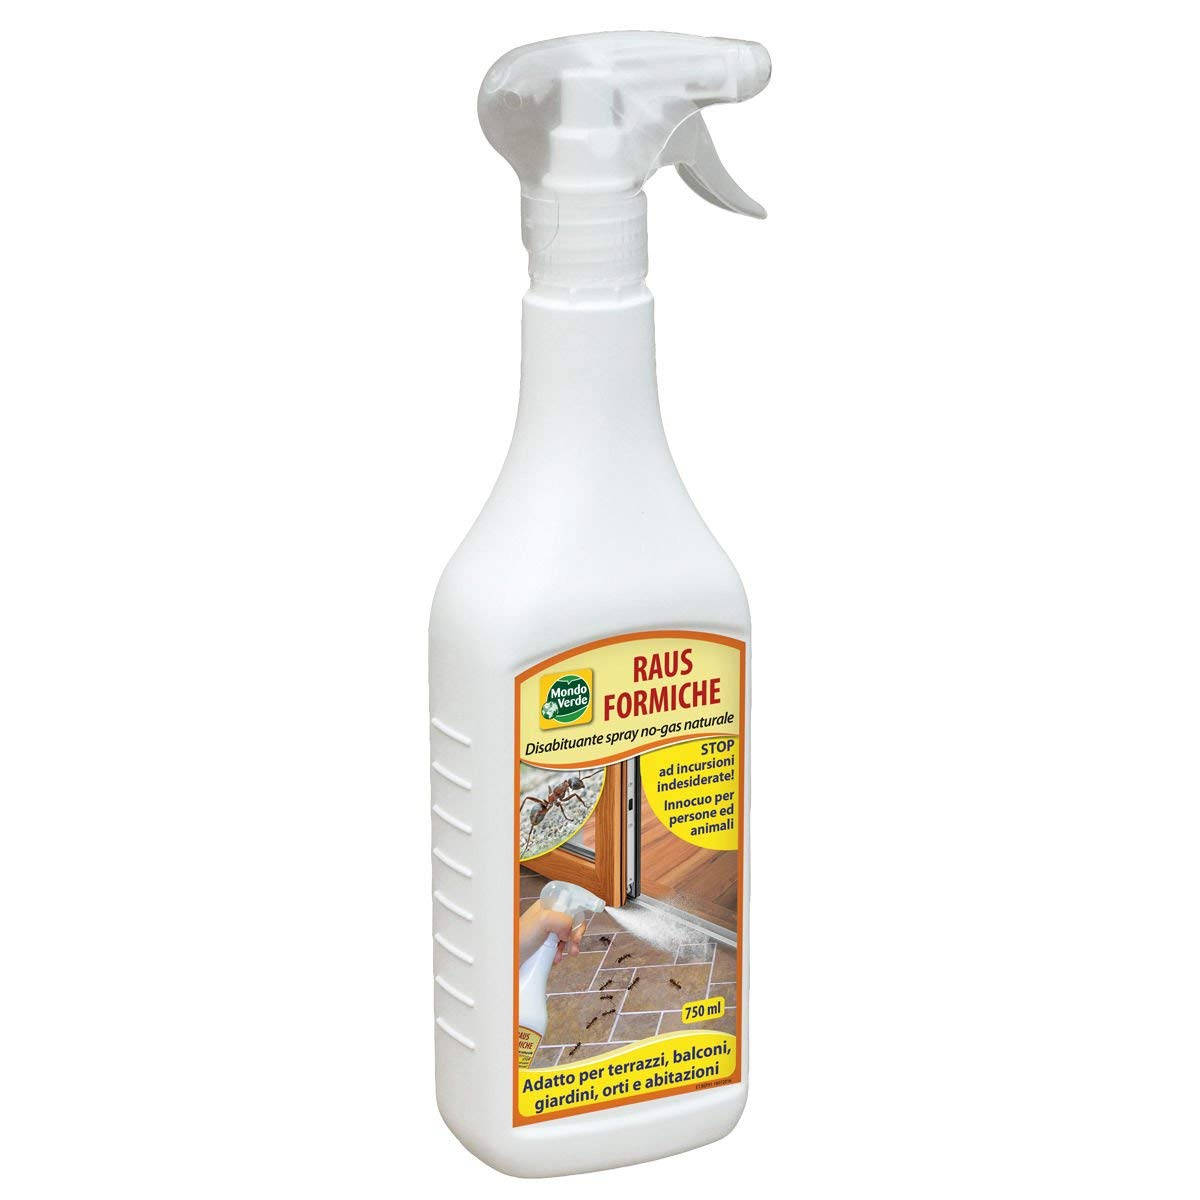 Spray da 750 ML Disabituante Repellente Naturale Anti Formiche Casa Giardino.